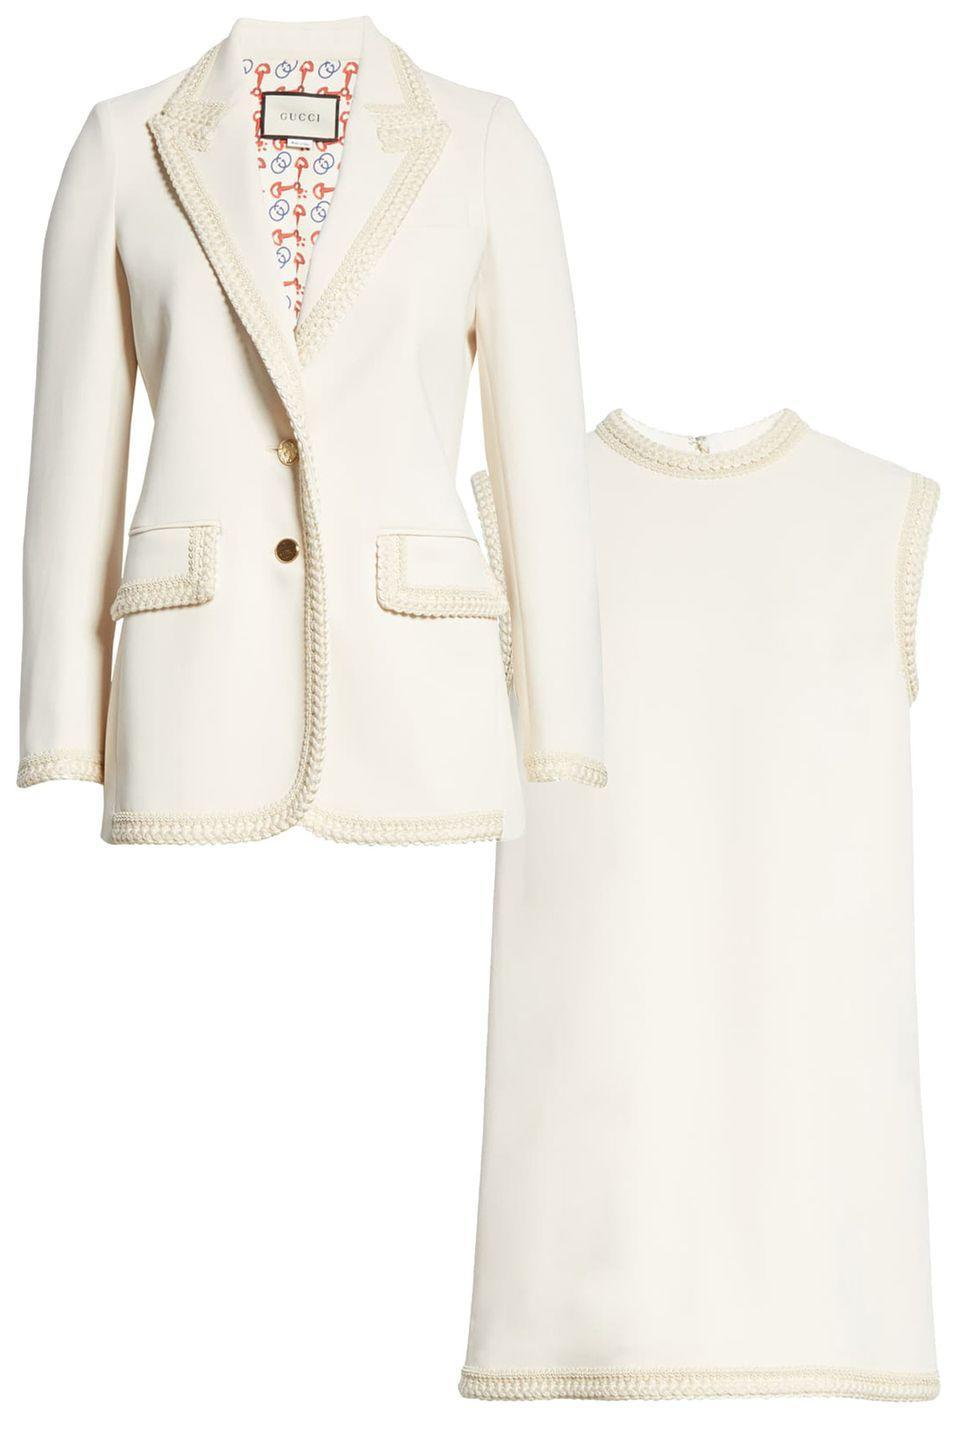 """<p>Mix things up with a coordinating trimmed blazer and dress. The cream set will look amazing with gold accessories. </p><p><a href=""""https://go.skimresources.com?id=74968X1525087&xs=1&url=https%3A%2F%2Fwww.nordstrom.com%2Fs%2Fgucci-passementerie-trim-stretch-cady-blazer%2F5453182%3Forigin%3Dcategory-personalizedsort%26breadcrumb%3DHome%252FWomen%252FClothing%252FCoats%252C%2520Jackets%2520%2526%2520Blazers%26fashioncolor%3DWhite%26color%3Dninfea%2520white%252F%2520mix"""" rel=""""nofollow noopener"""" target=""""_blank"""" data-ylk=""""slk:Gucci Blazer"""" class=""""link rapid-noclick-resp""""><br>Gucci Blazer</a><a href=""""https://go.skimresources.com?id=74968X1525087&xs=1&url=https%3A%2F%2Fwww.nordstrom.com%2Fs%2Fgucci-passementerie-trim-stretch-cady-tunic-top%2F5453177%3Forigin%3Dcategory-personalizedsort%26breadcrumb%3DHome%252FBrands%252FGucci%252FWomen%252FClothing%26color%3Dninfea%2520white"""" rel=""""nofollow noopener"""" target=""""_blank"""" data-ylk=""""slk:Gucci Dress"""" class=""""link rapid-noclick-resp""""><br>Gucci Dress</a></p>"""